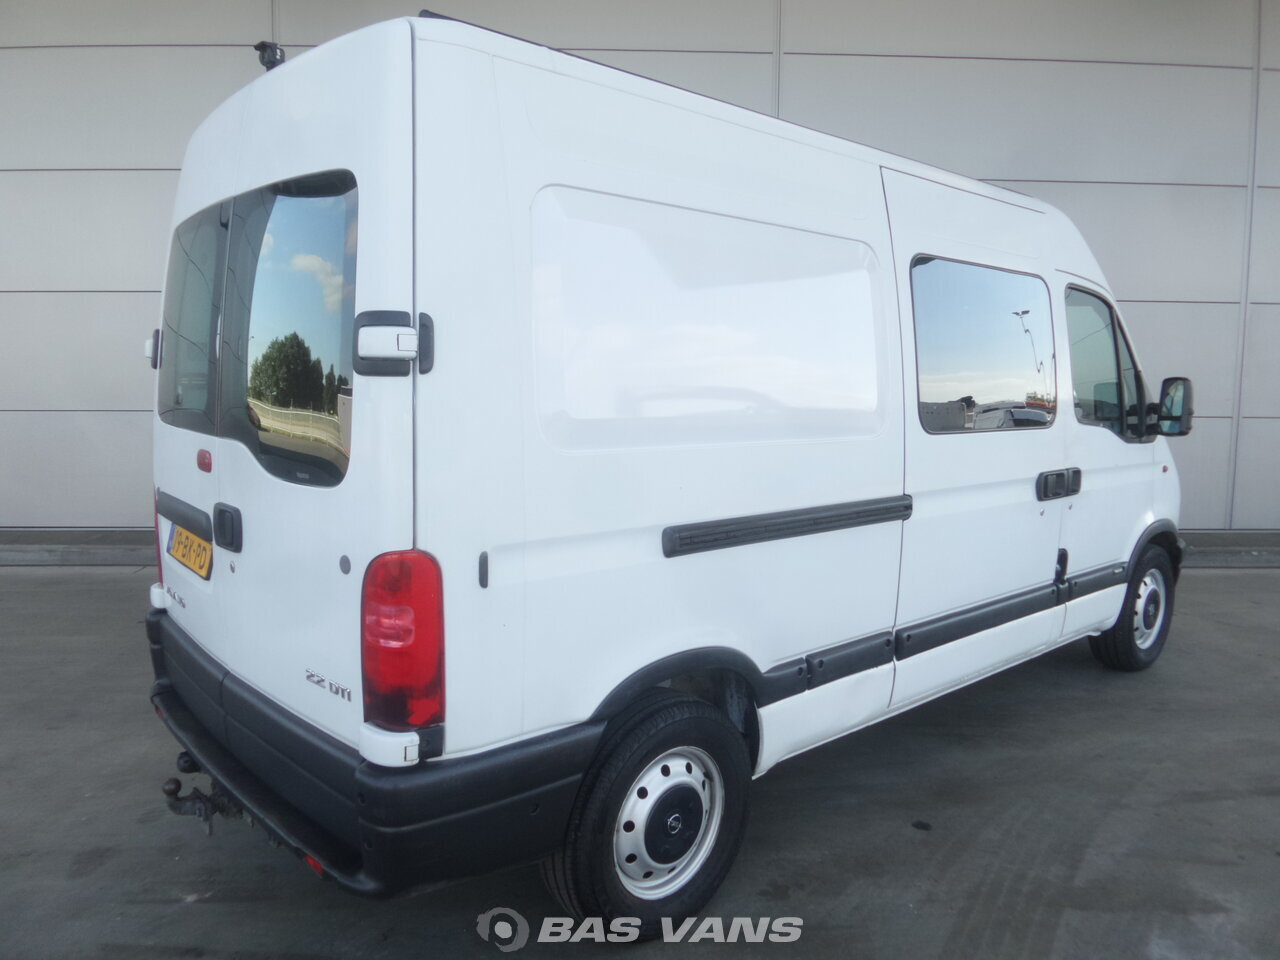 opel movano 2.2dti t35 2003 closed van light commercial